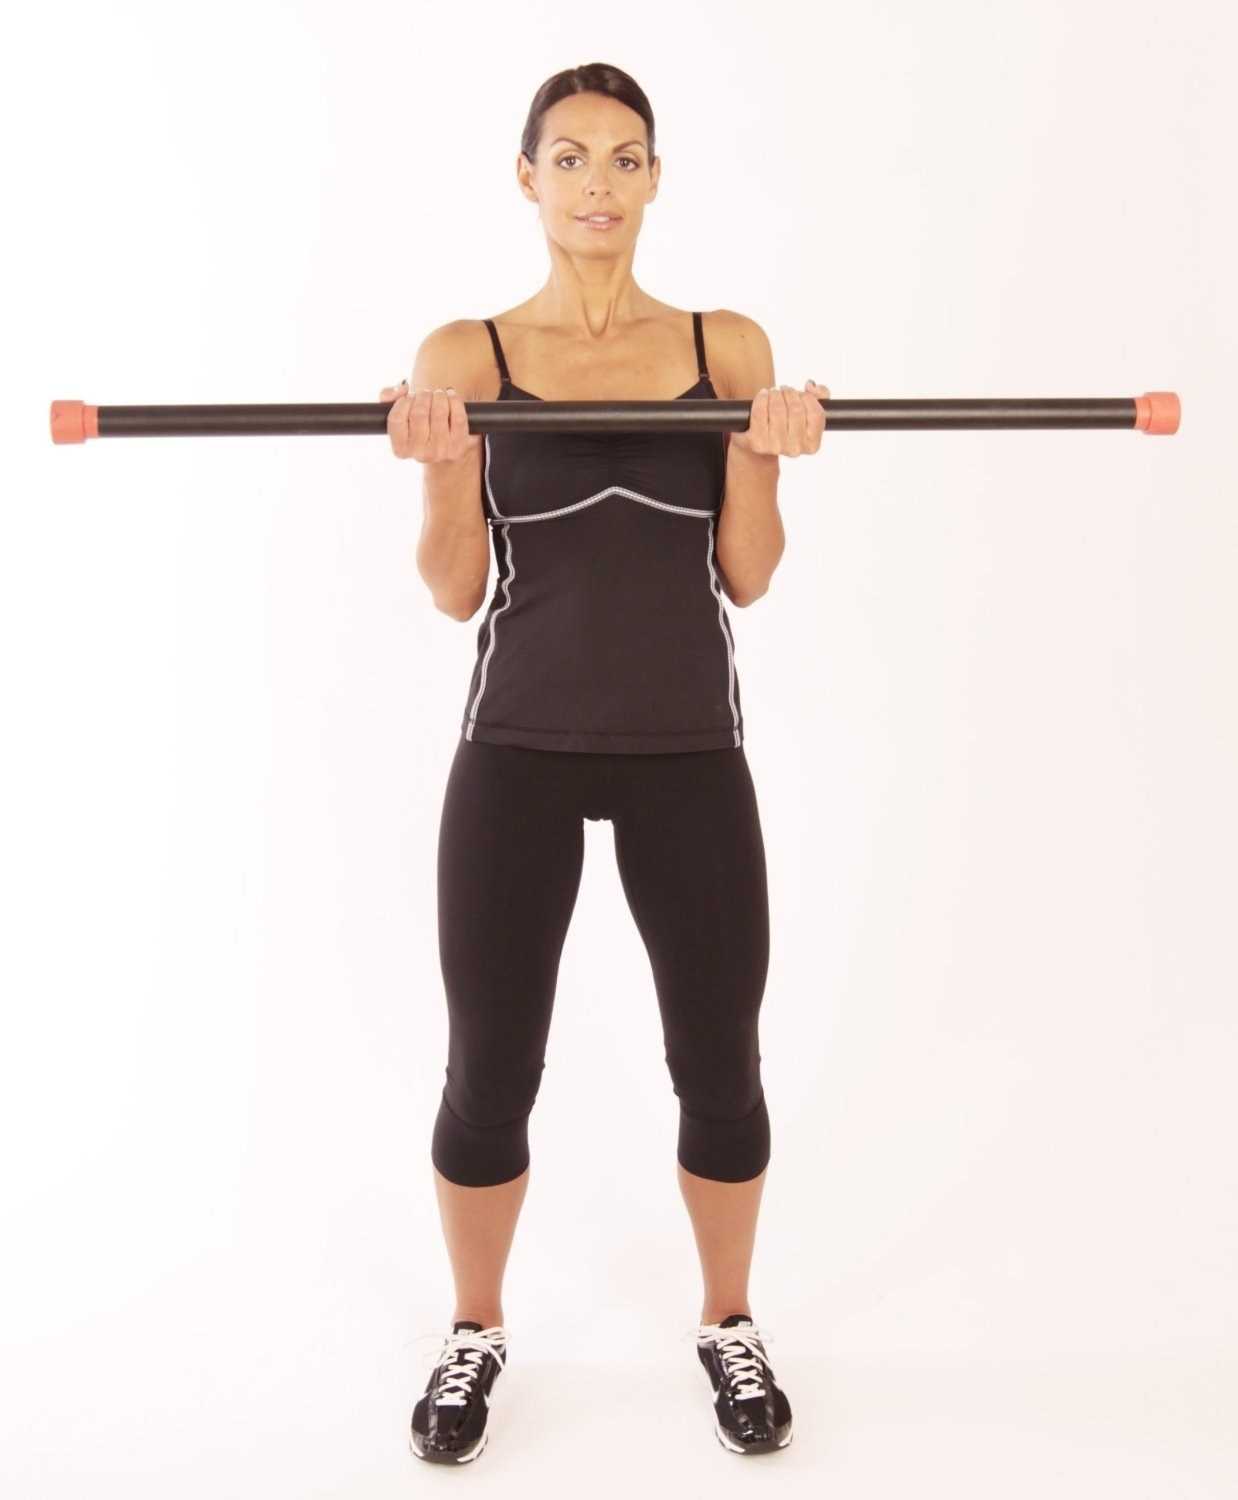 A person lifting the bar, about as long as their wingspan, to their chest while standing